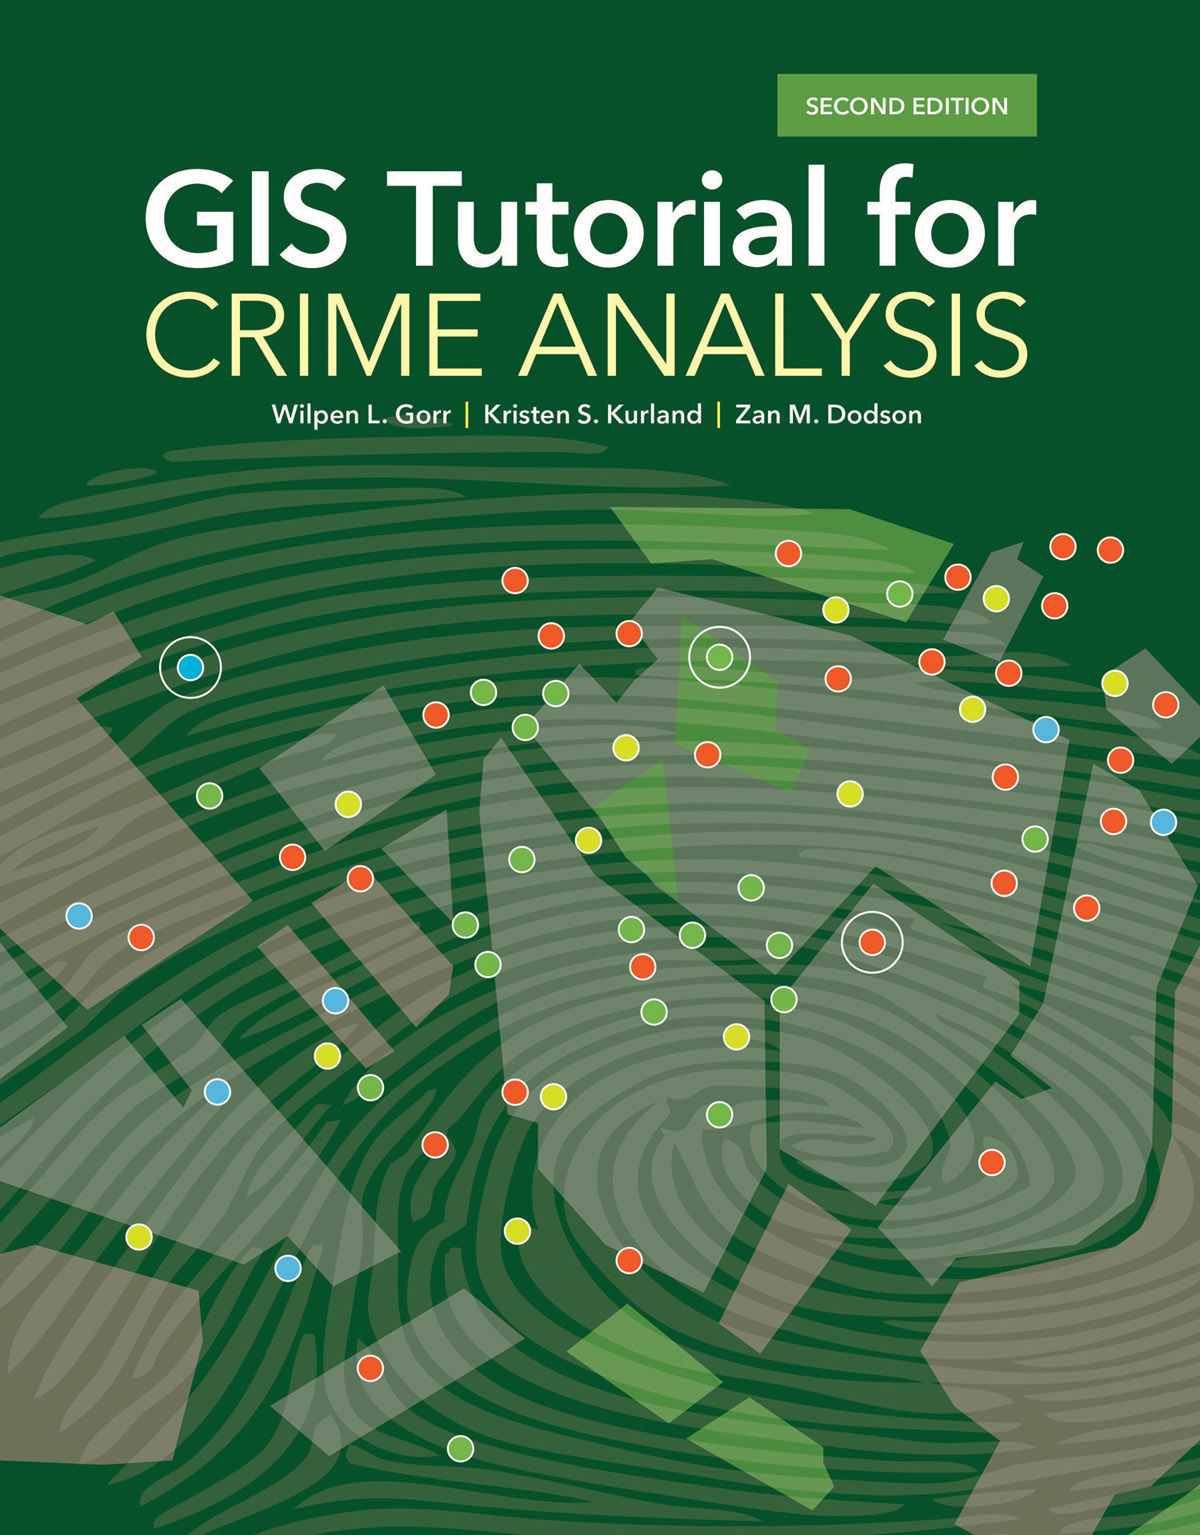 GIS Tutorial for Crime Analysis Second Edition